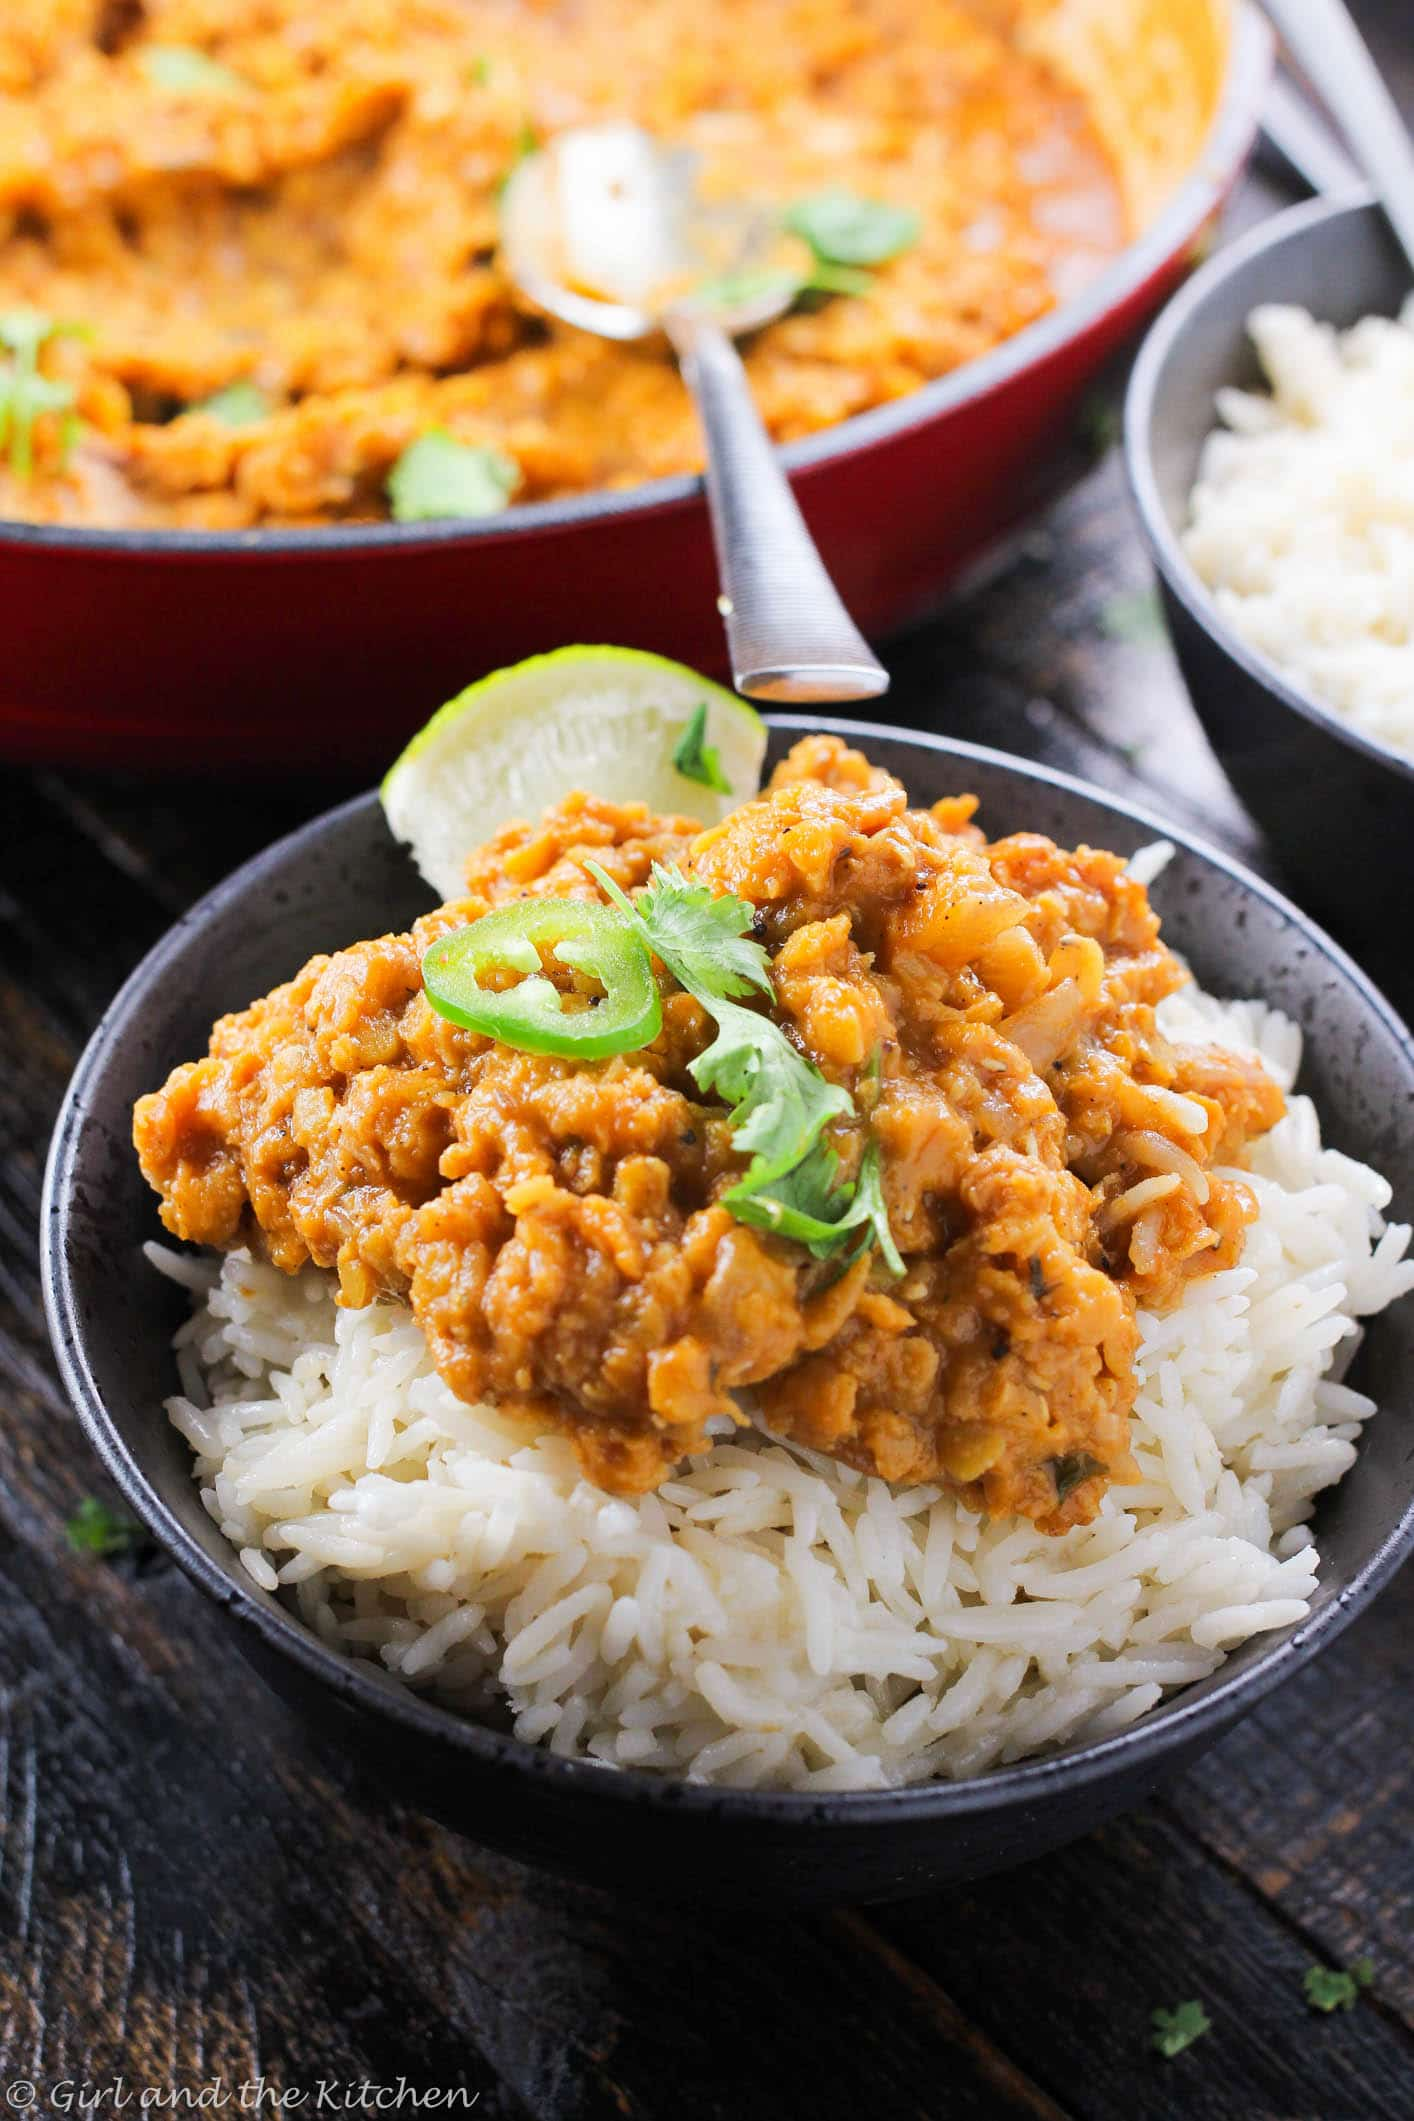 Lentils have gotten a bad rep. And I think I need to fix that. Lentils are full of fiber, protein, incredible texture and best of all they are super economical! My saucy coconut lentils are packed with savory flavors and sweet, creamy coconut milk. Serve it with rice, naan or nothing at all :)